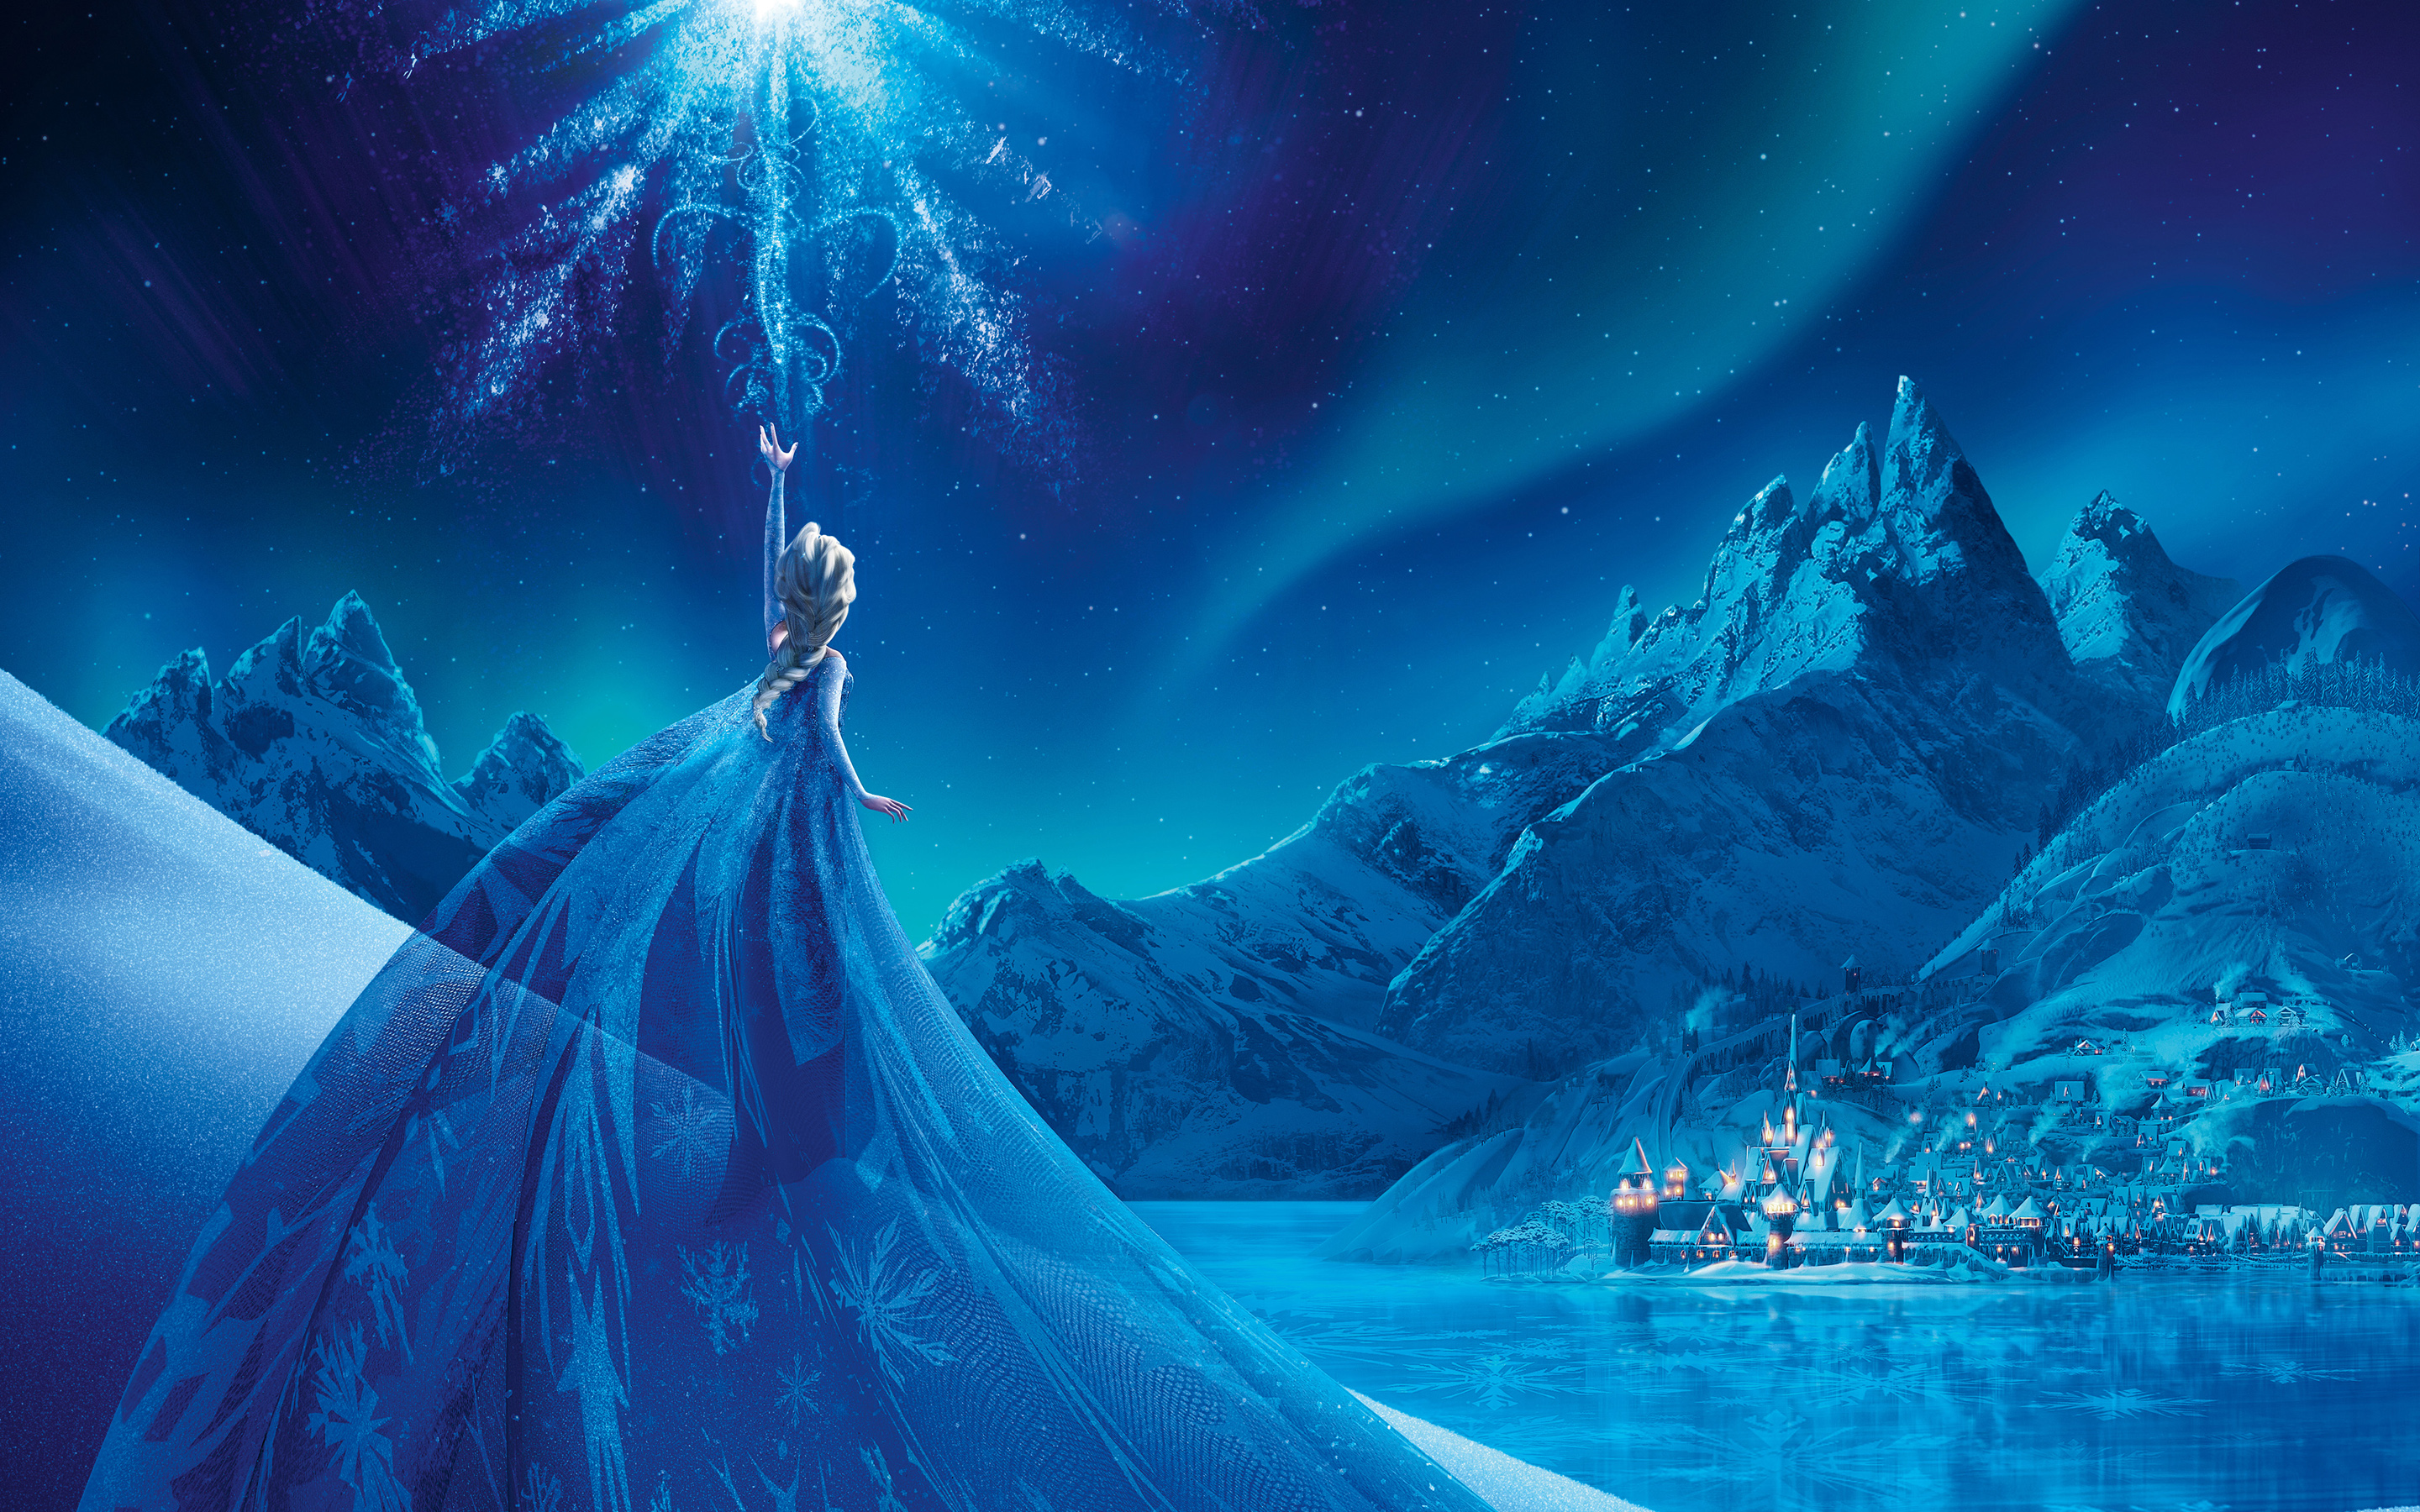 Frozen Elsa Snow Queen Palace 2445.65 Kb